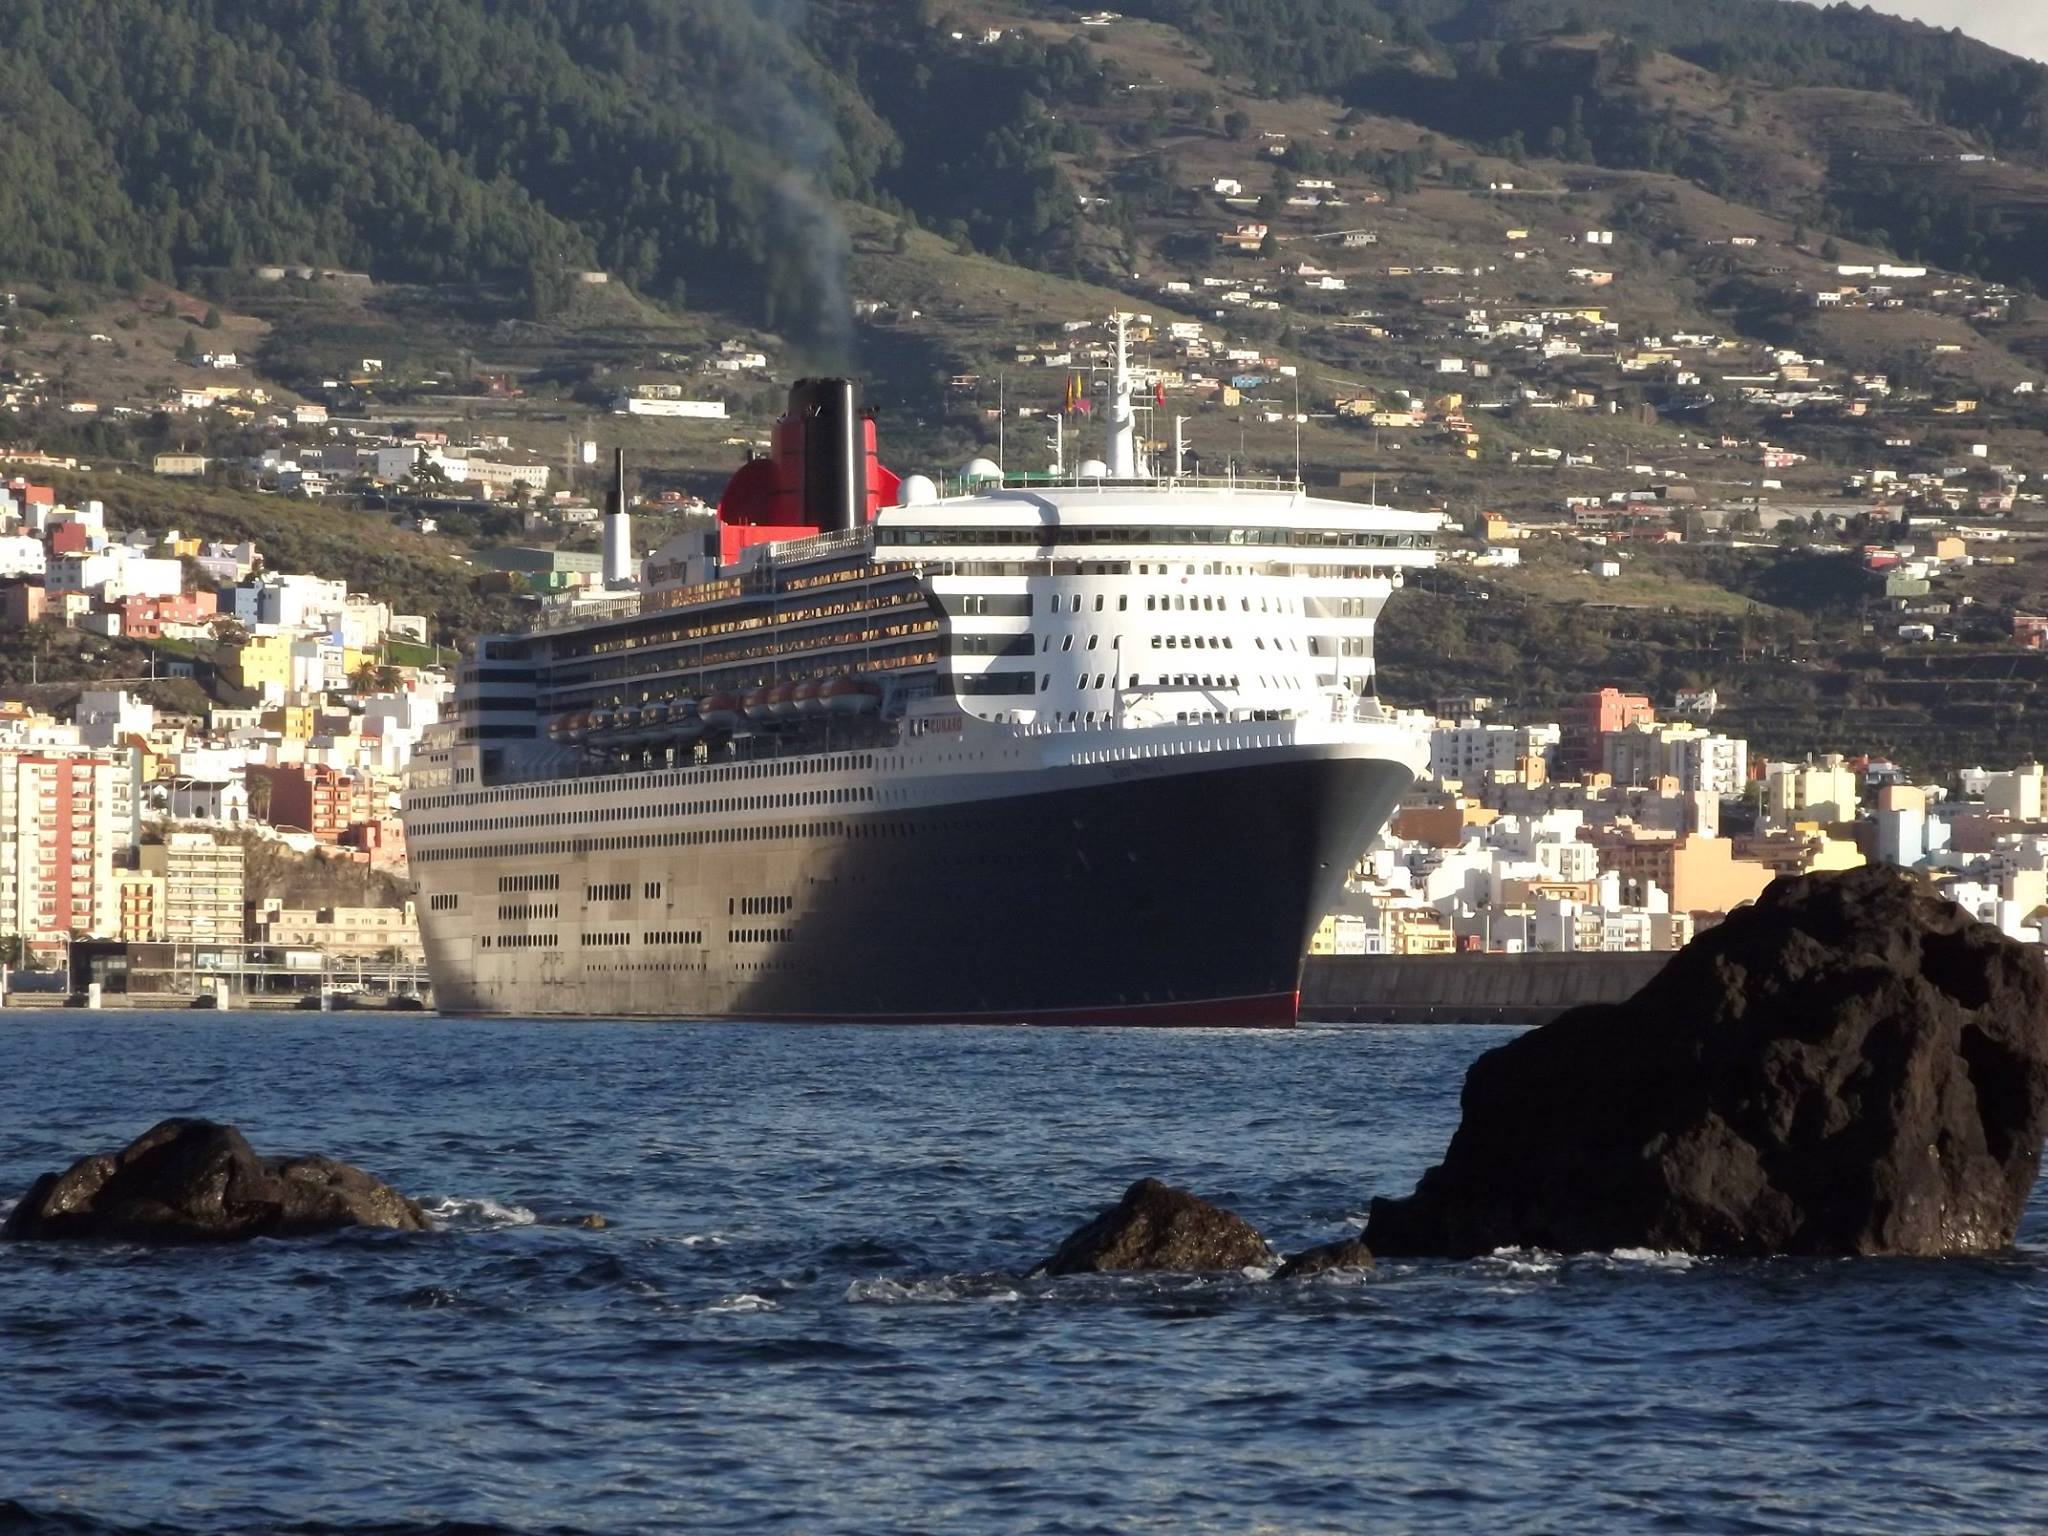 QUEEN MARY 2  9241061 ©José Javier Pérez